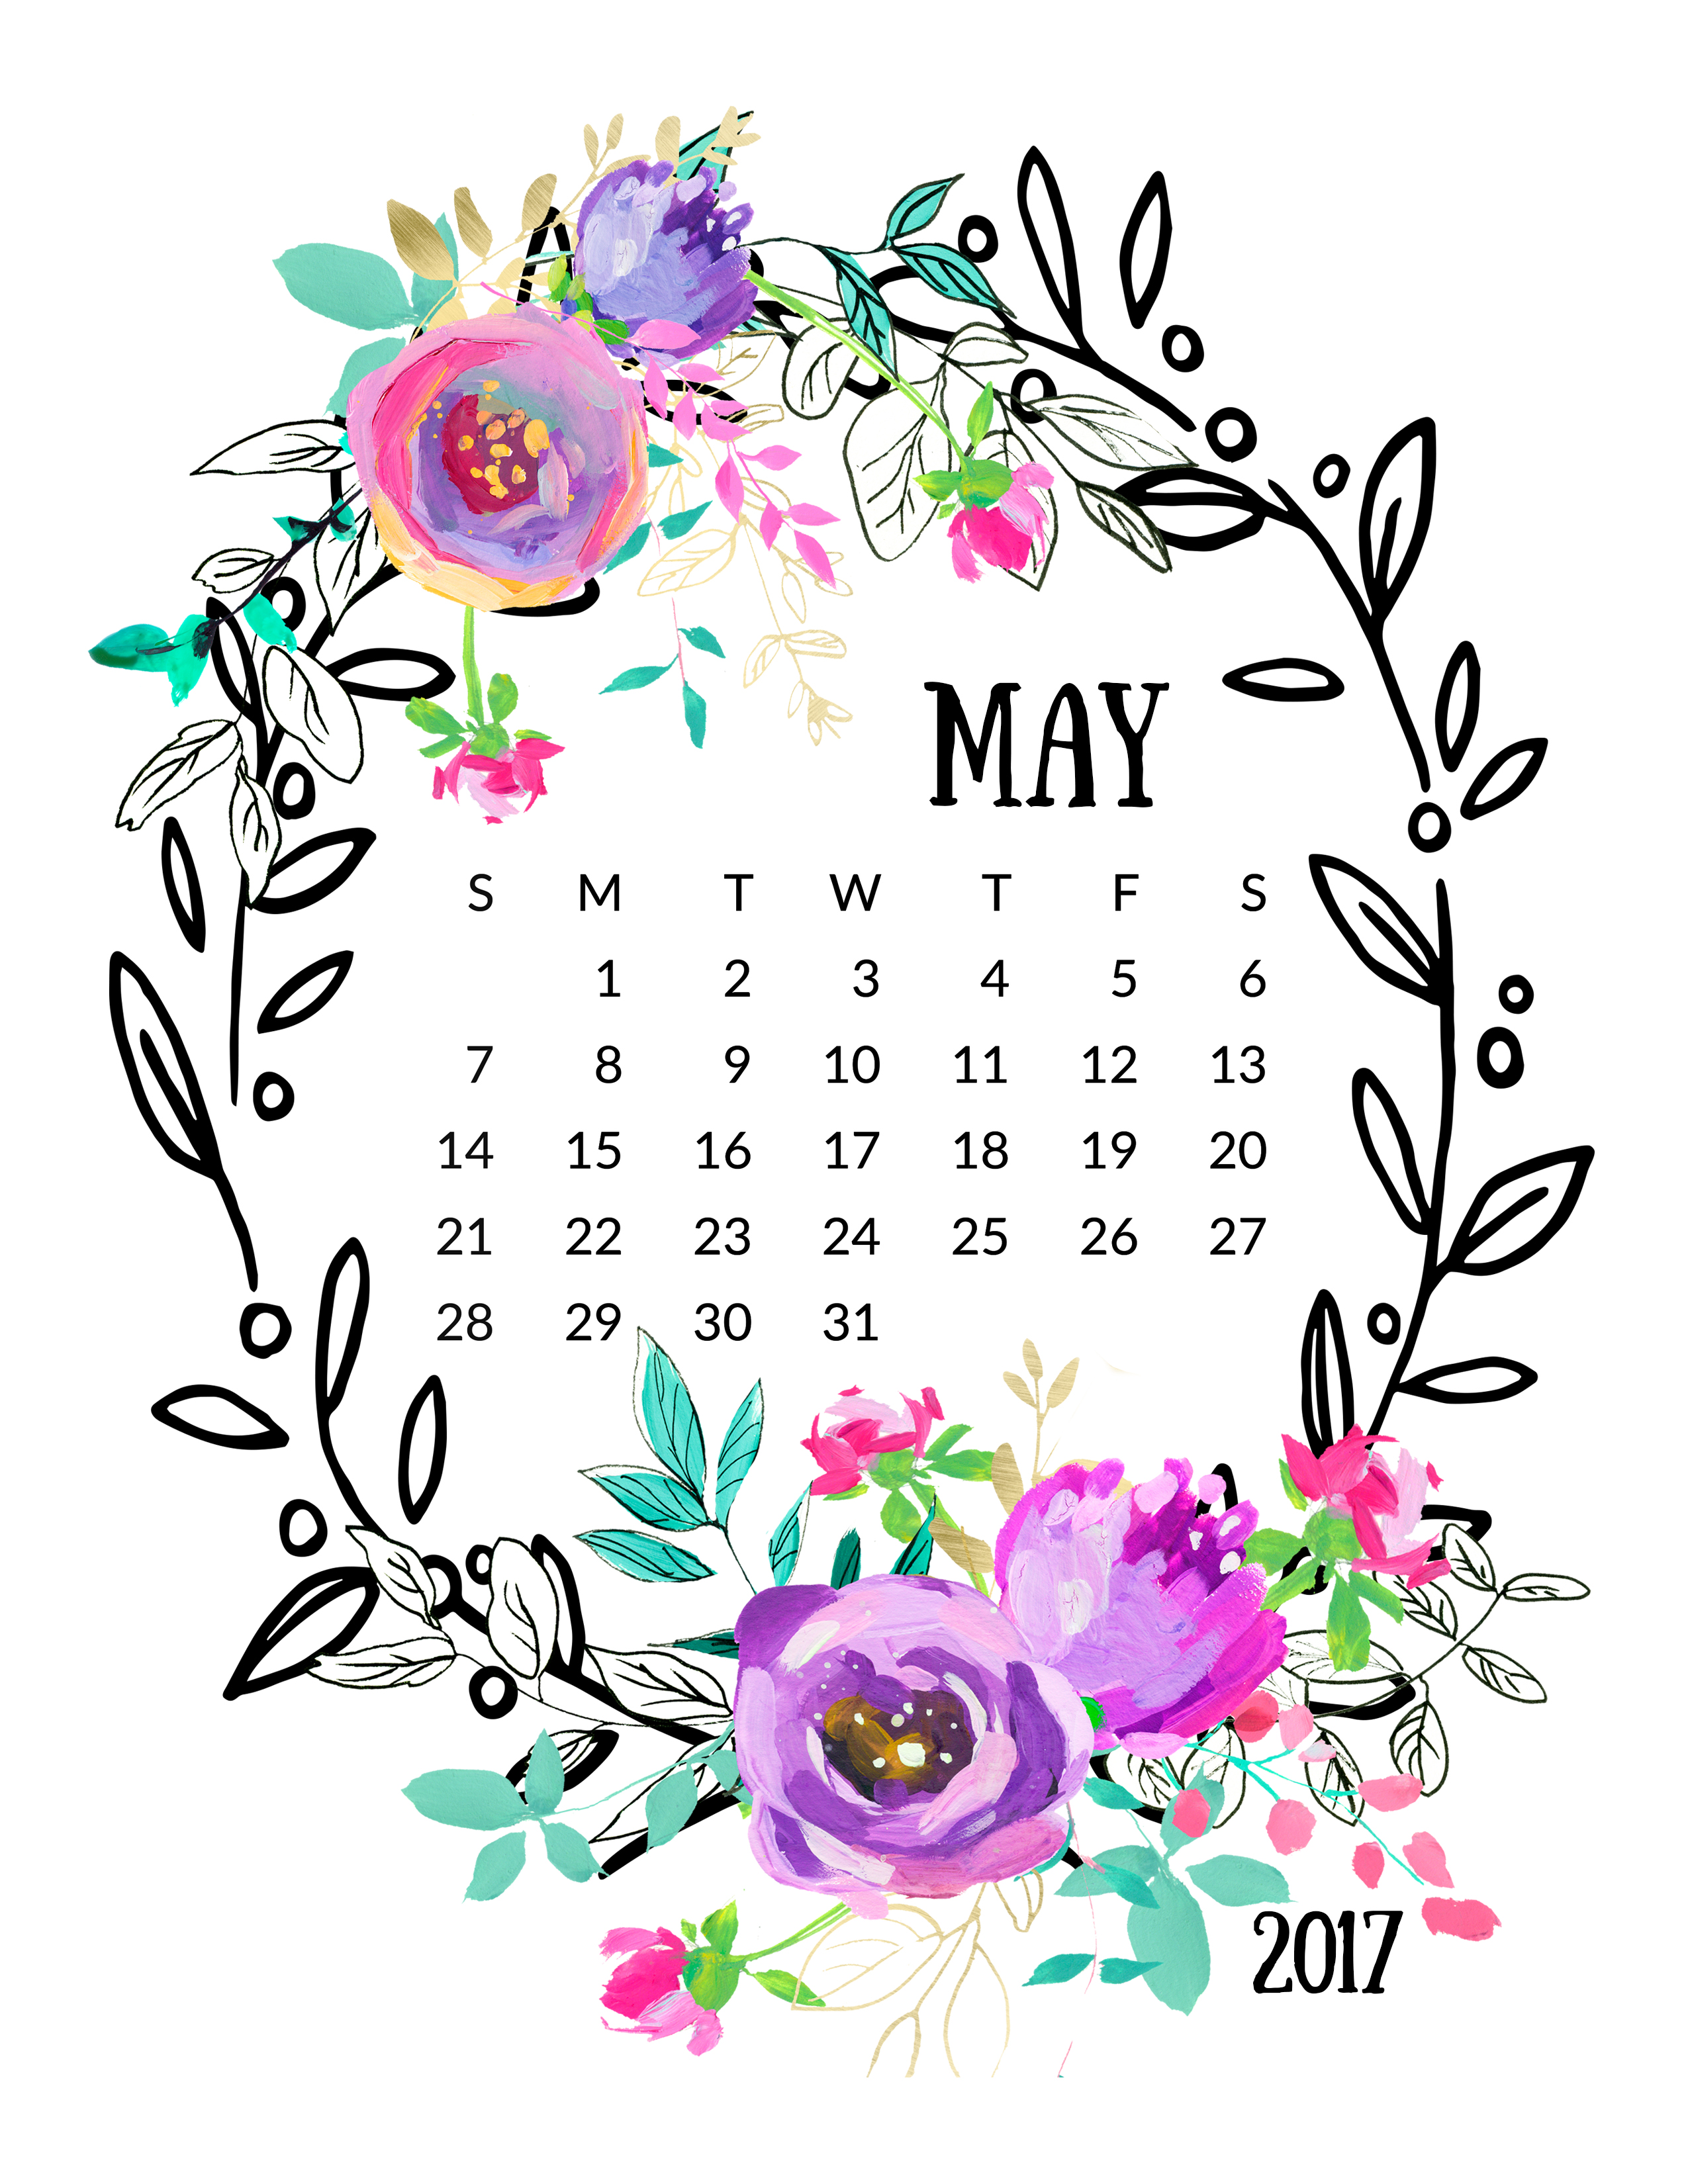 Free Calendar Clipart may 2017, Download Free Clip Art on.